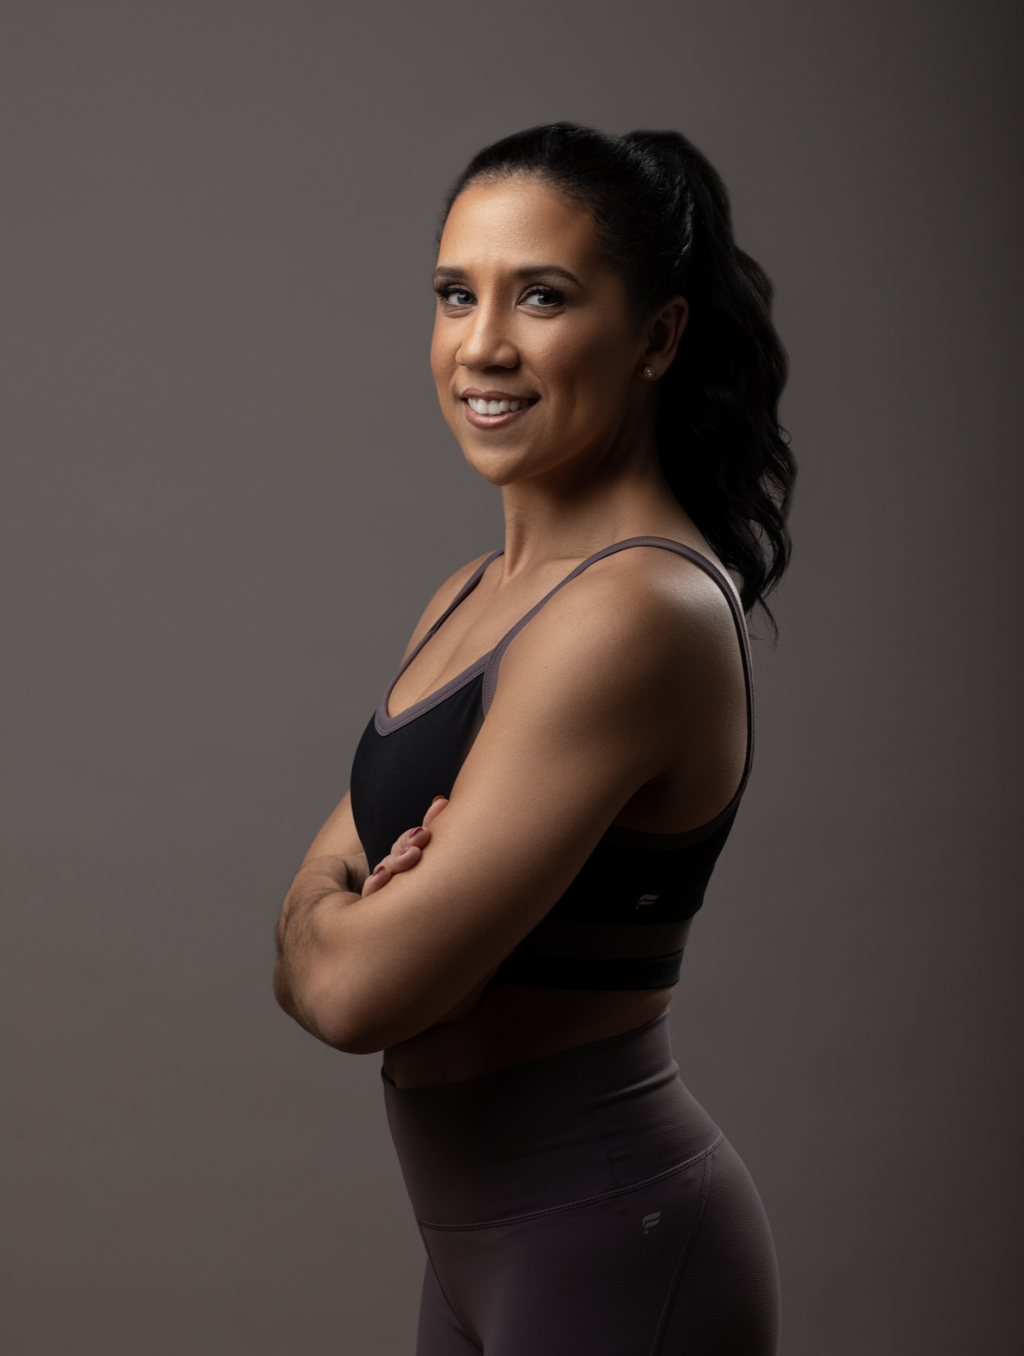 Personal Trainer New-london, Connecticut - Andrea Chappelle